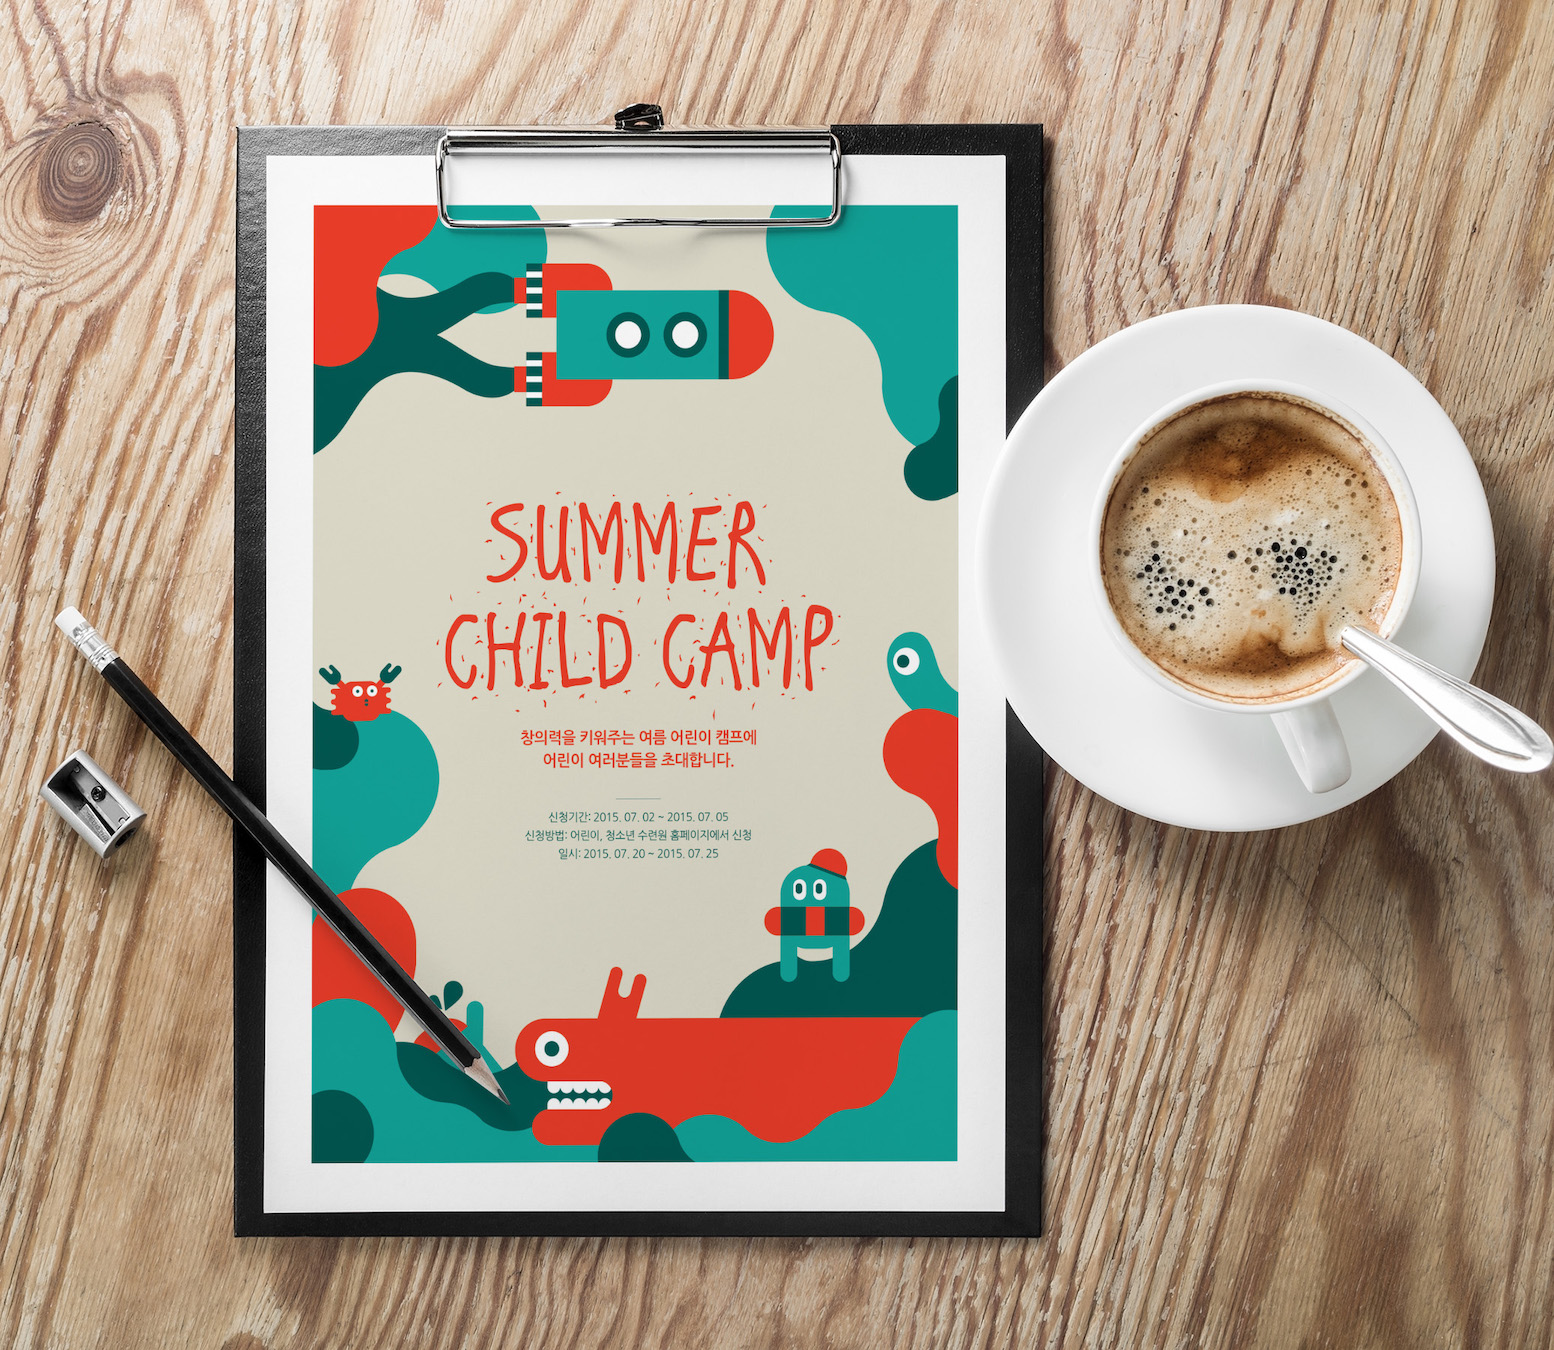 Unique Summer Camp Marketing Flyer Example5